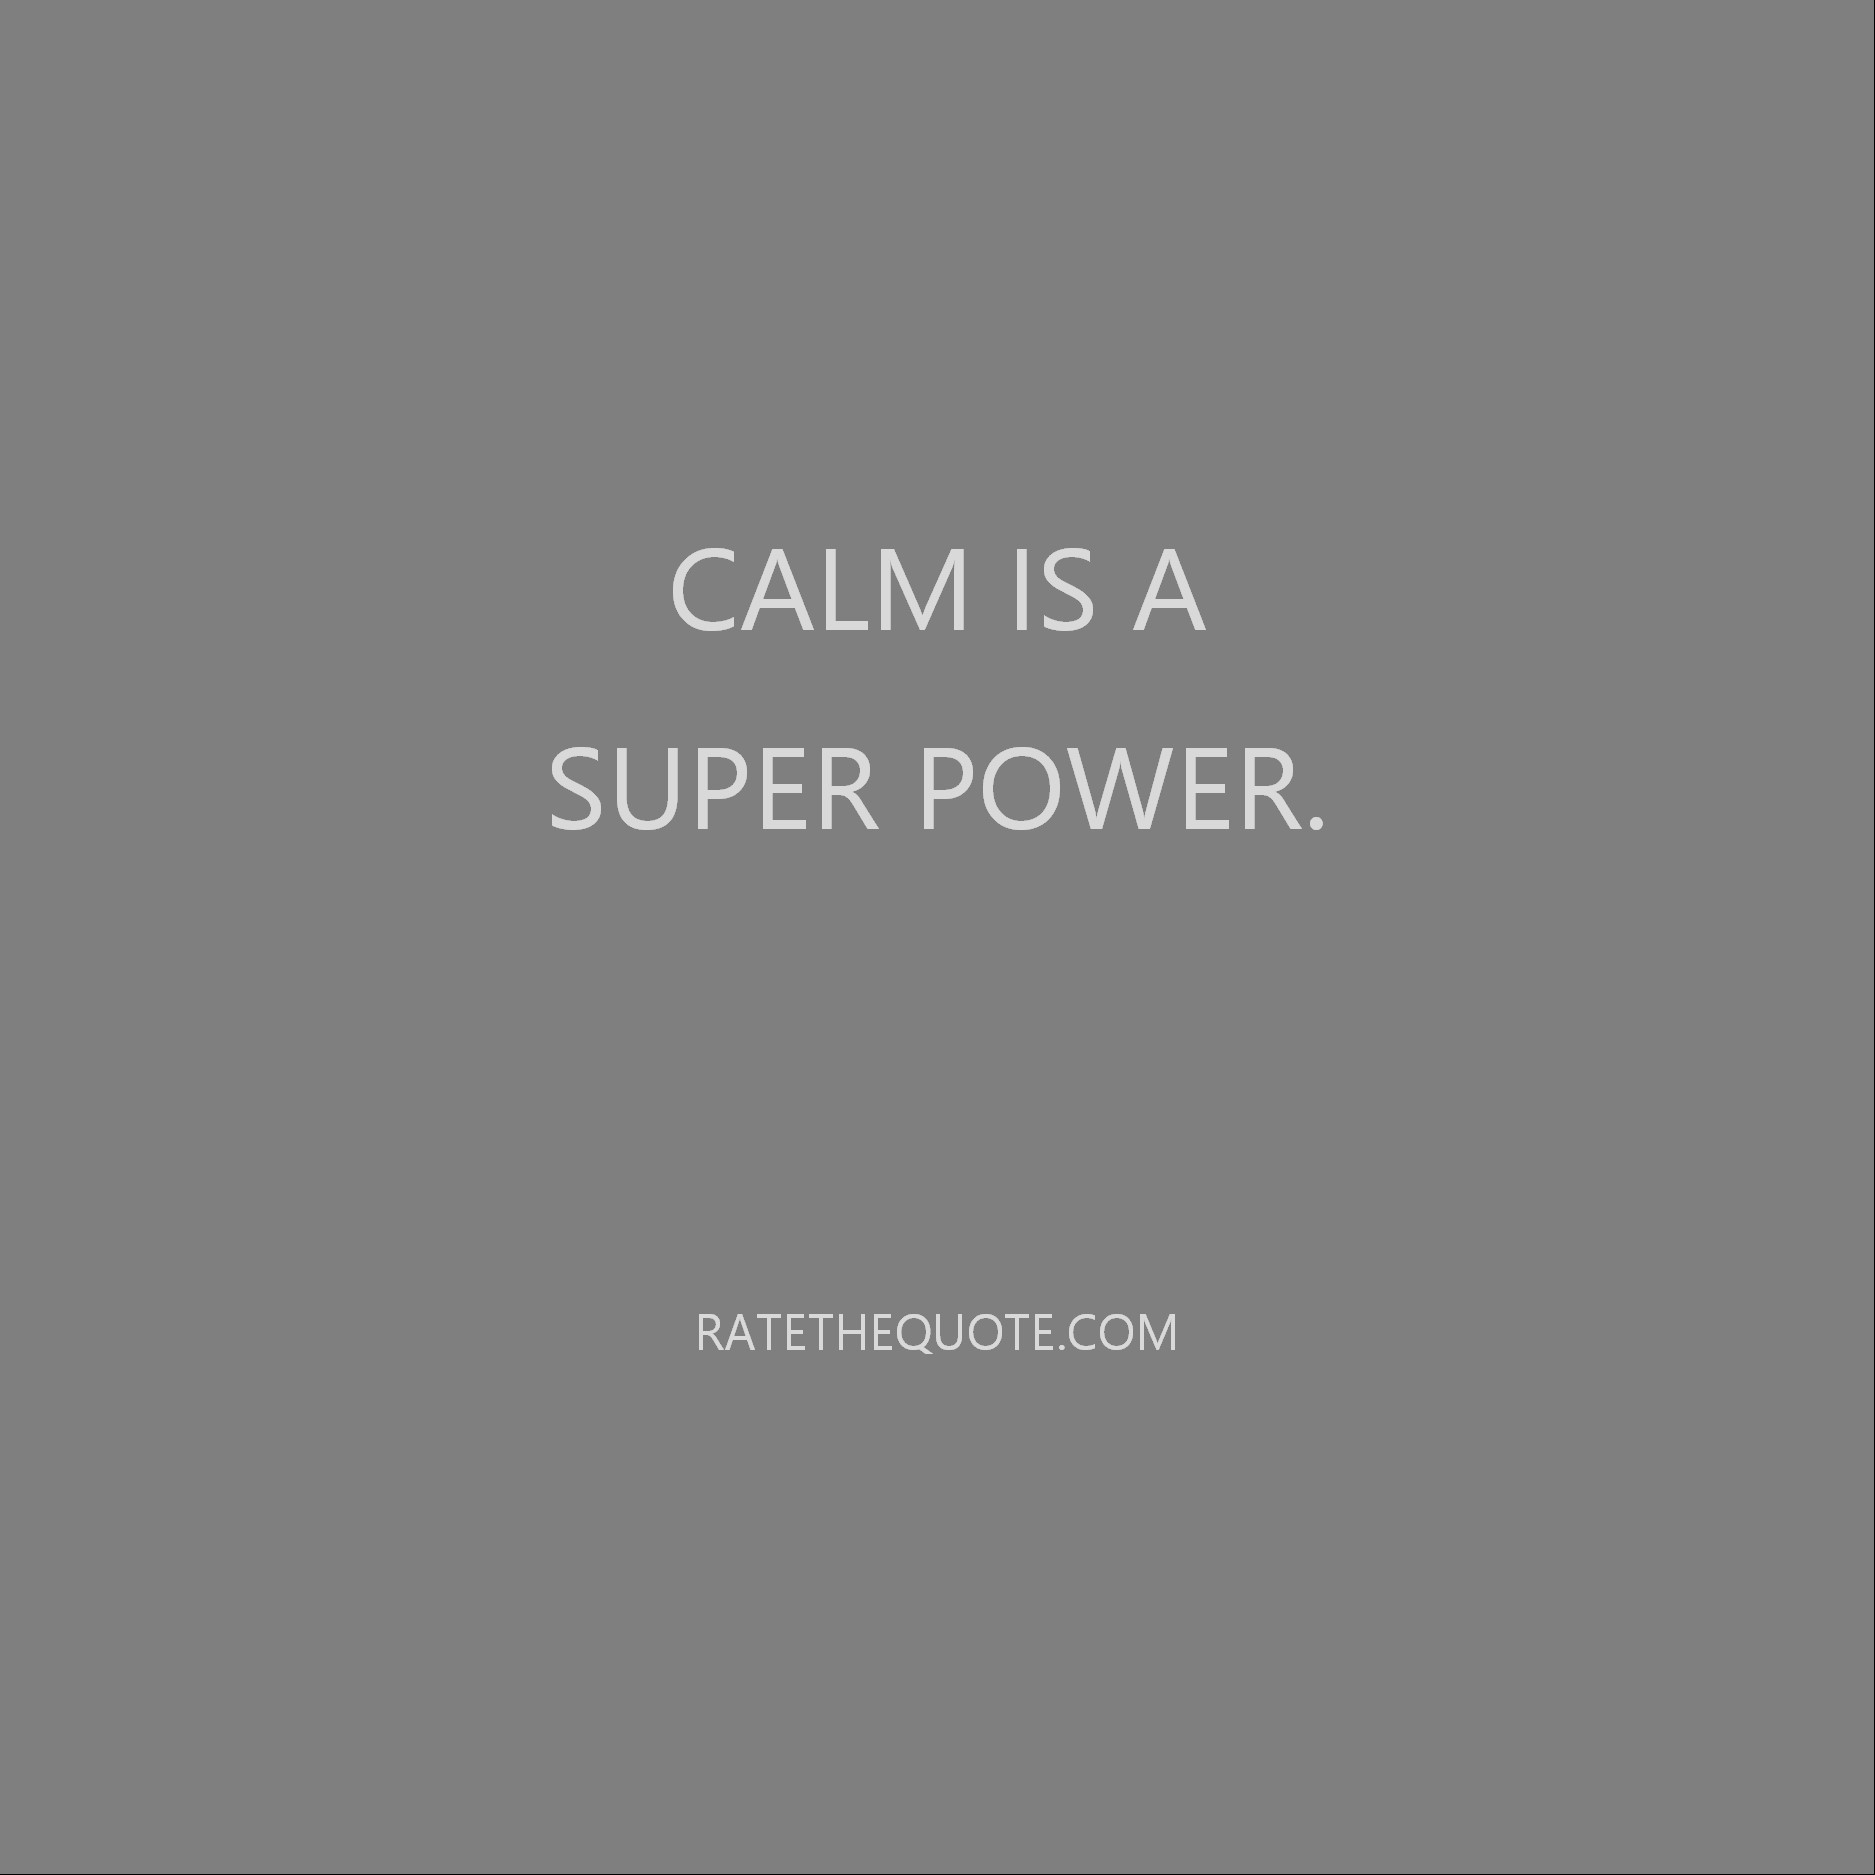 Quote Calm is a super power.